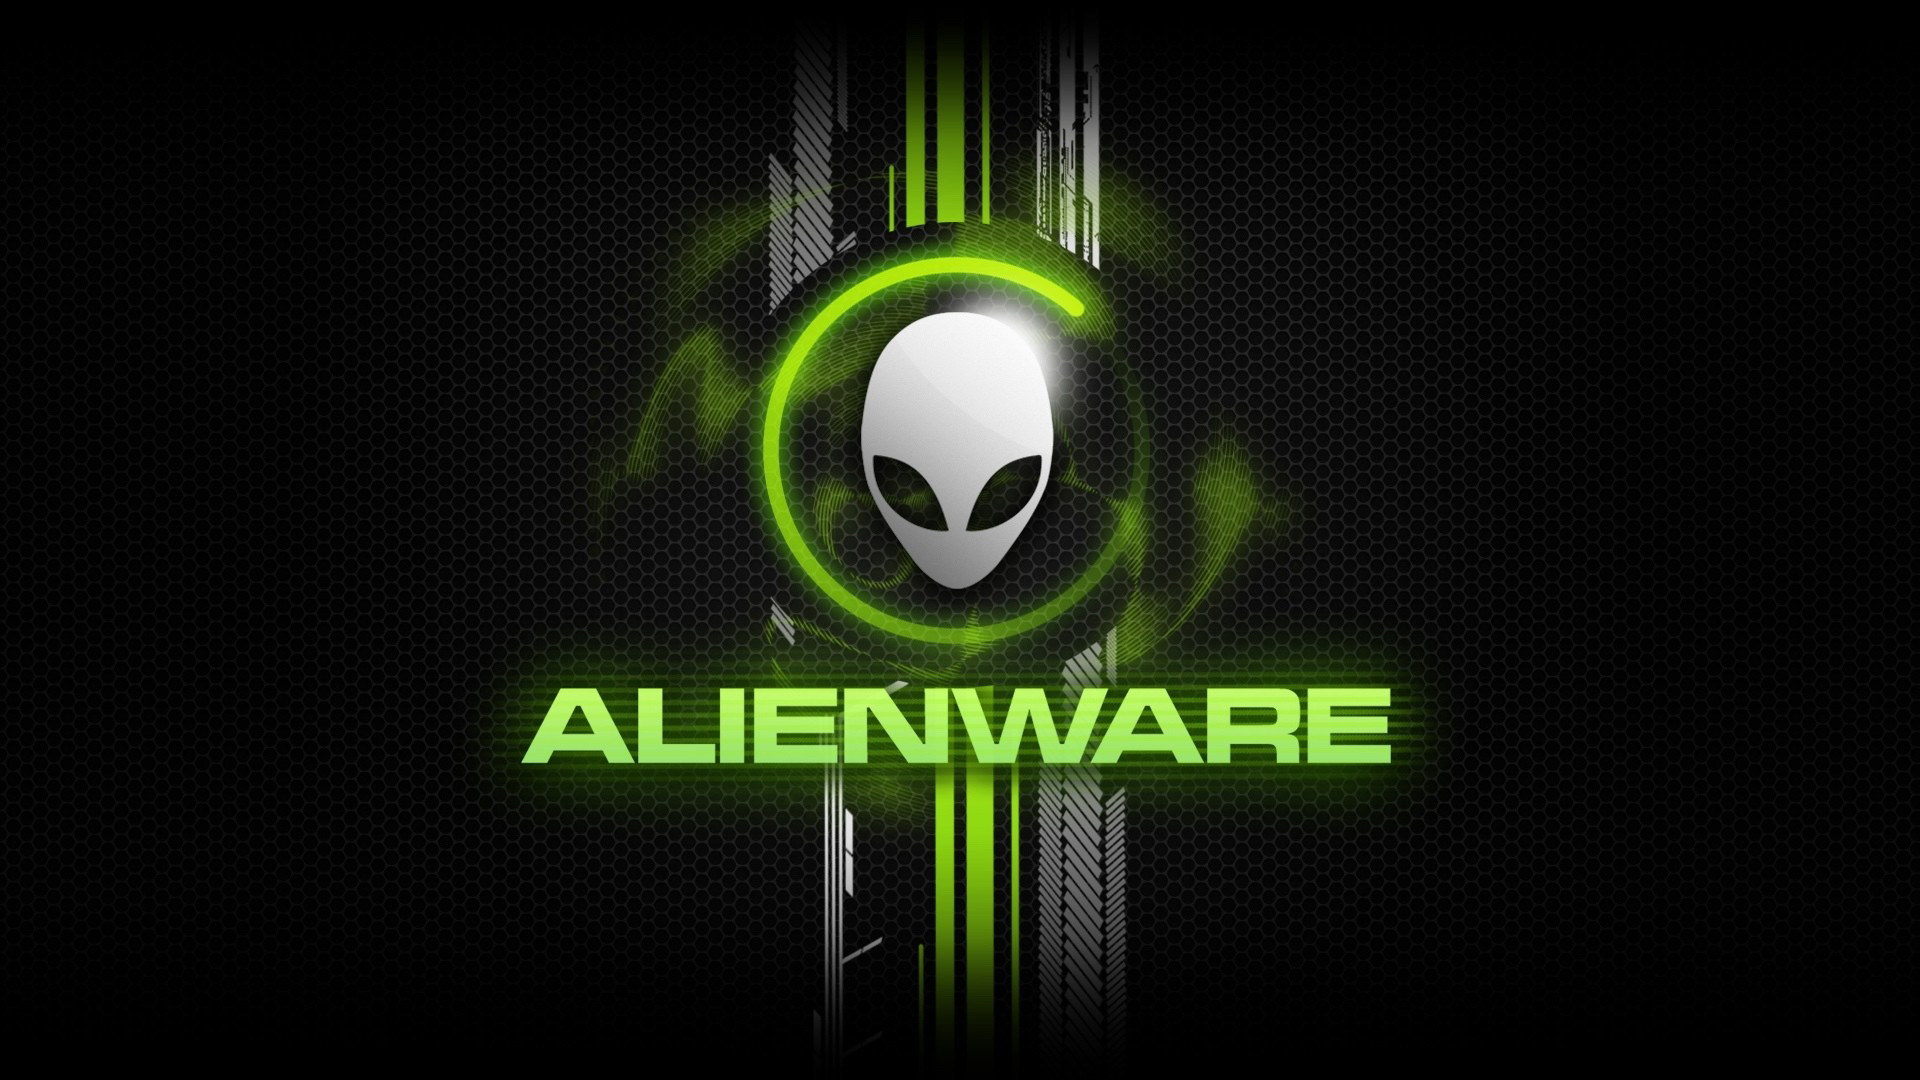 ... alienware wallpaper 10 ...